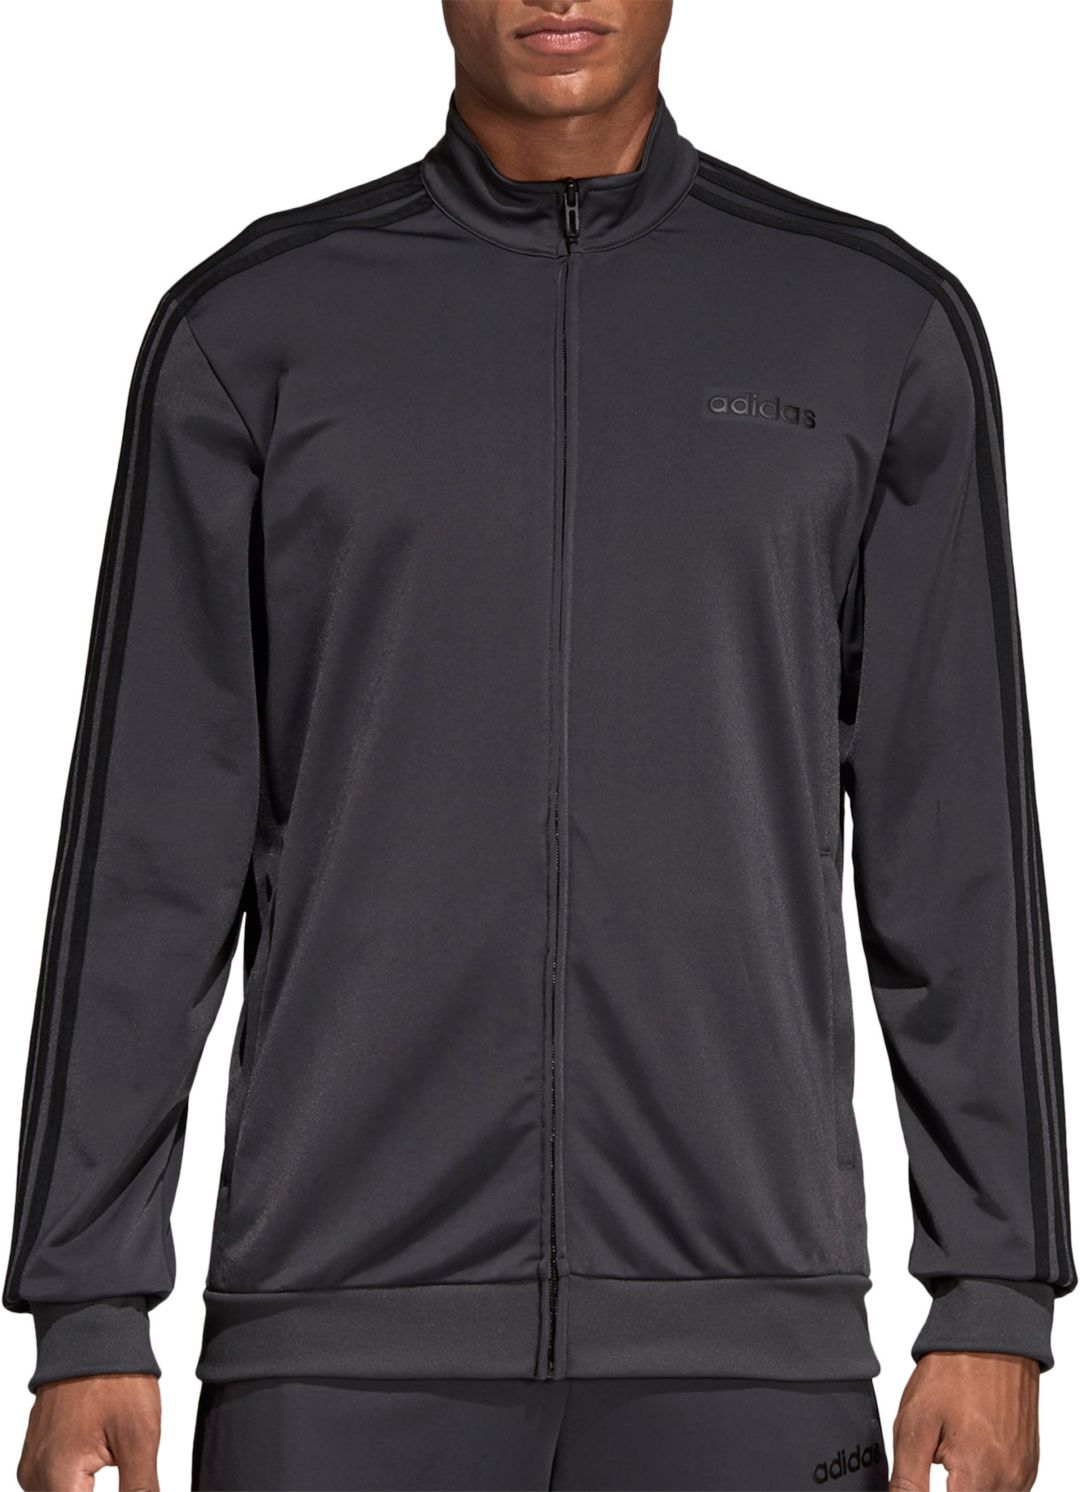 adidas black and gold track jacket, Up to 50% Off adidas